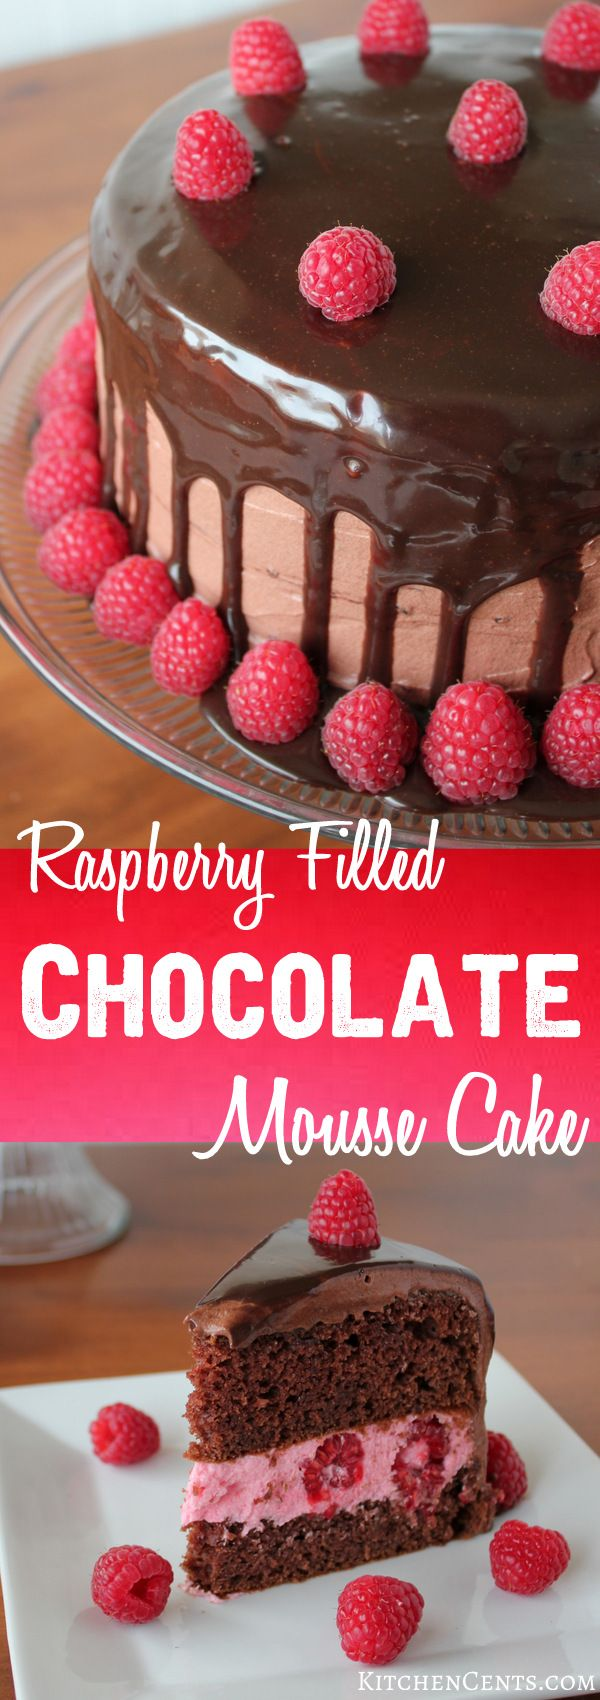 Raspberry Filled Chocolate Mousse Cake with chocolate ganache | KitchenCents.com  With its raspberry filling, layers of moist chocolate cake, airy chocolate mousse and rich chocolate ganache, this Raspberry Filled Chocolate Mousse Cake is fit for royalty.